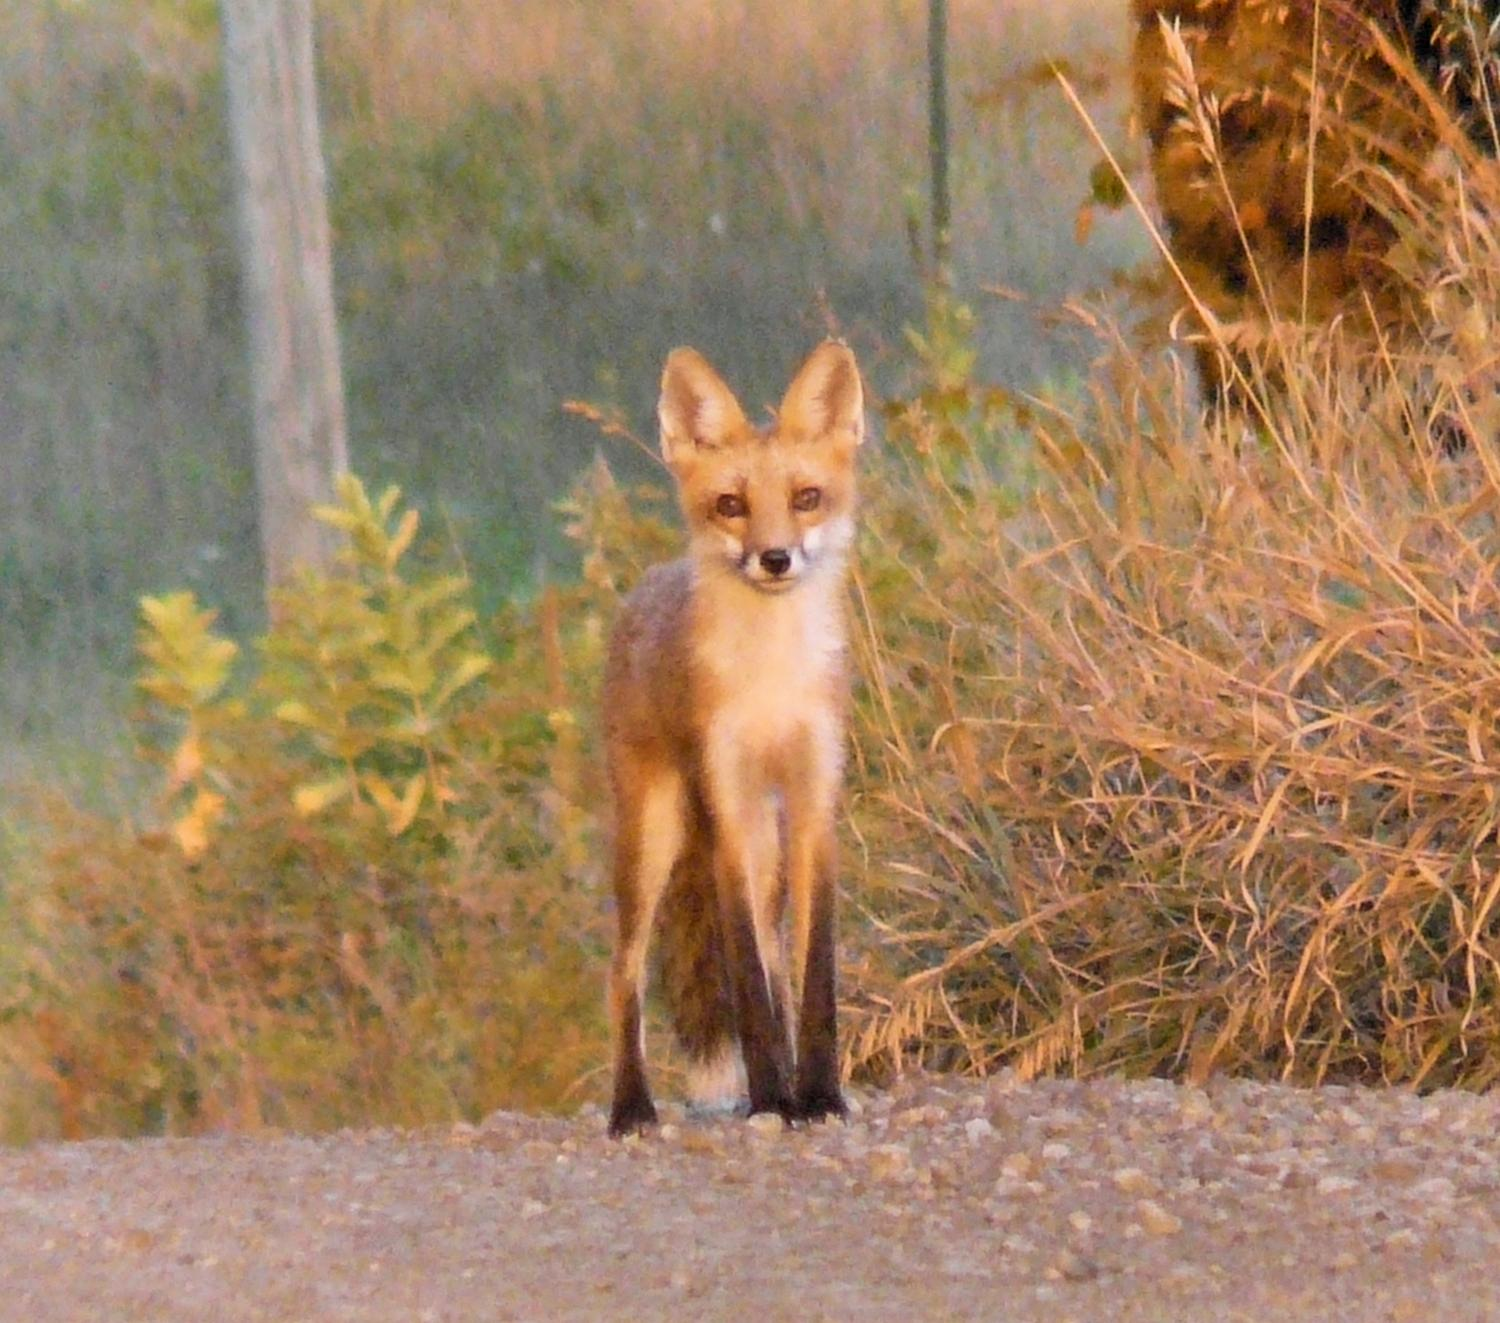 A fox in the road - by Marilyn Karp - A fox in the road -- taken by the Artist's Muse - Panasonic DMC-FZ18 - Tony Karp, design, art, photography, techno-impressionist, techno-impressionism, aerial photography , drone , drones , dji , mavic pro , video , 3D printing - Books -